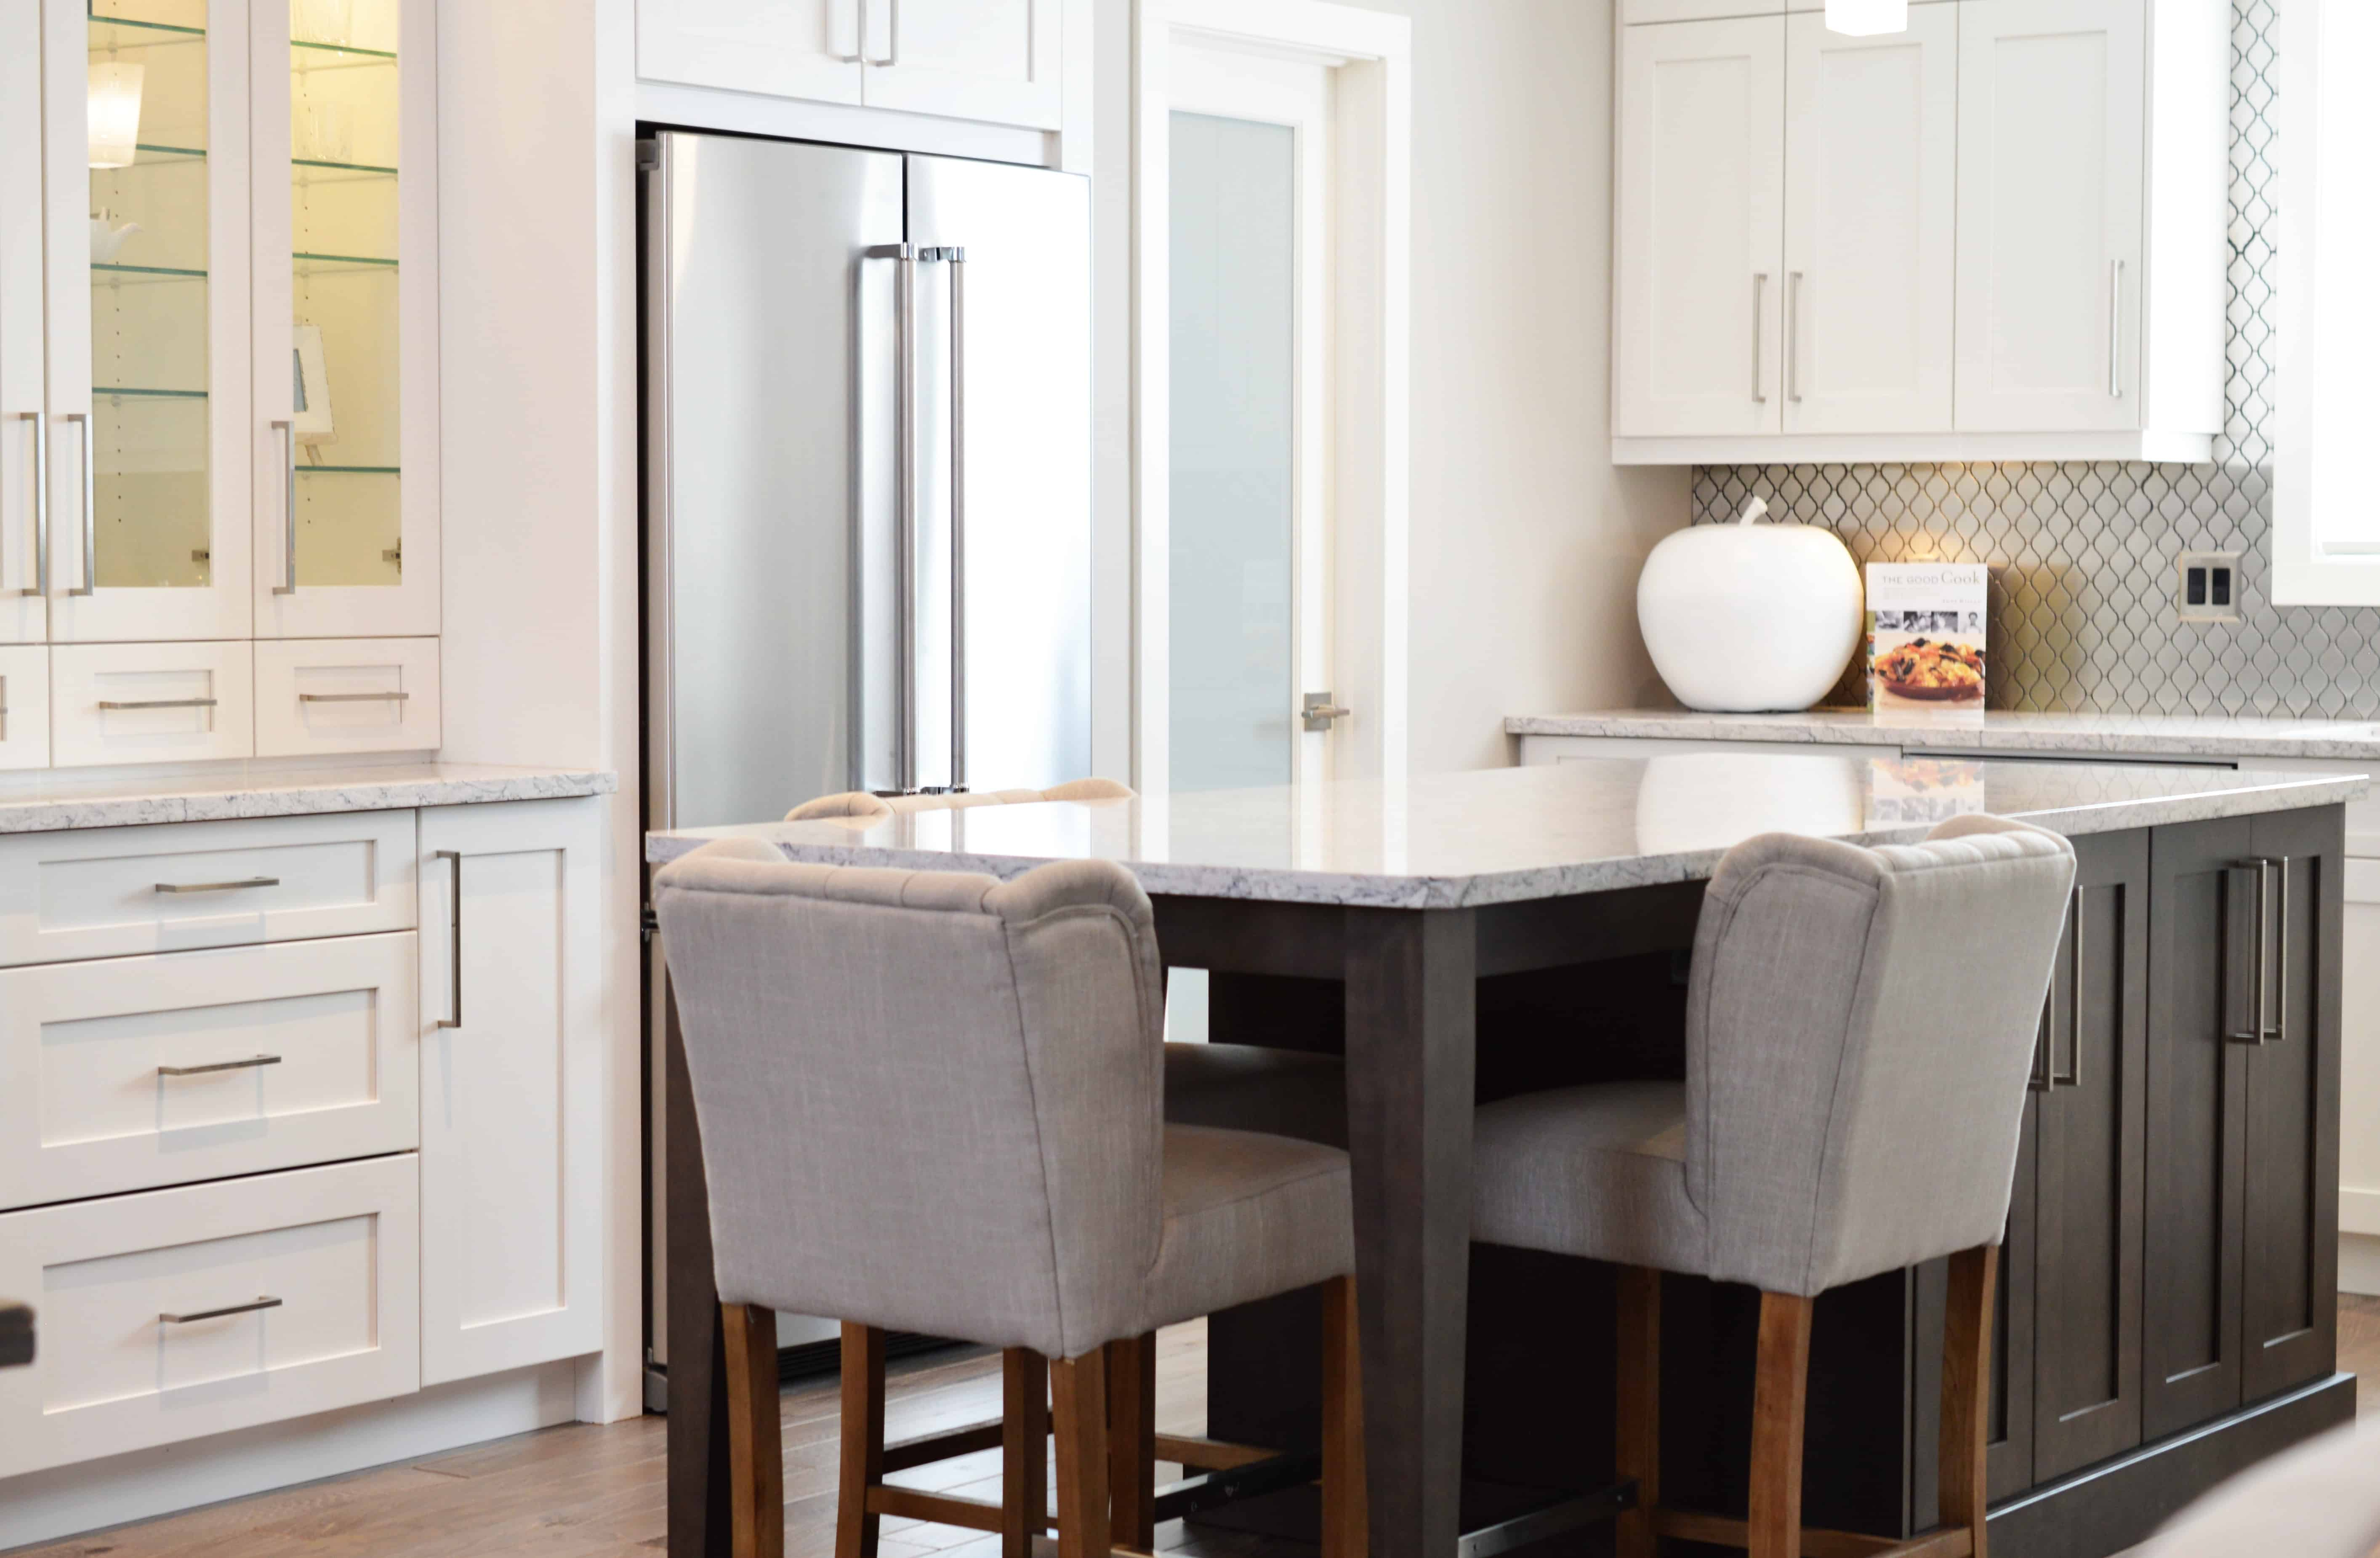 4 Ideas To Get A Big Impact From Your Small Kitchen Remodel